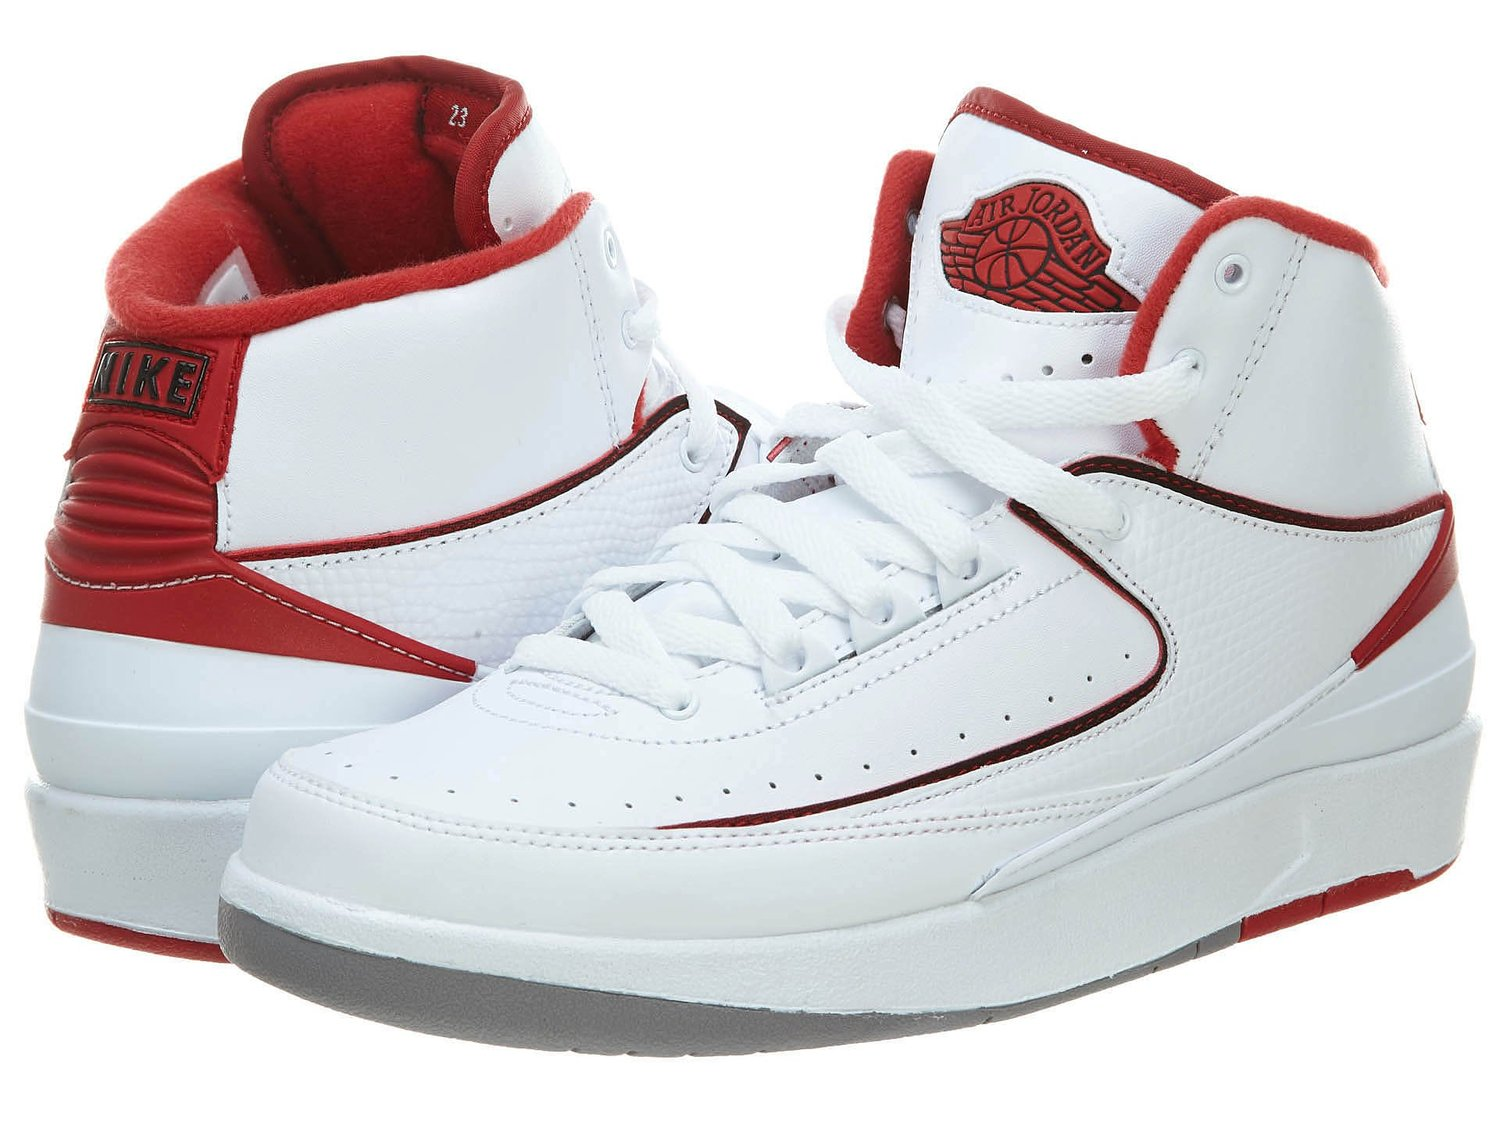 81d1f3f4a2a0fa Get Quotations · Air Jordan 2 Retro BG White Black-Varsity Red-Cement Grey  (6Y